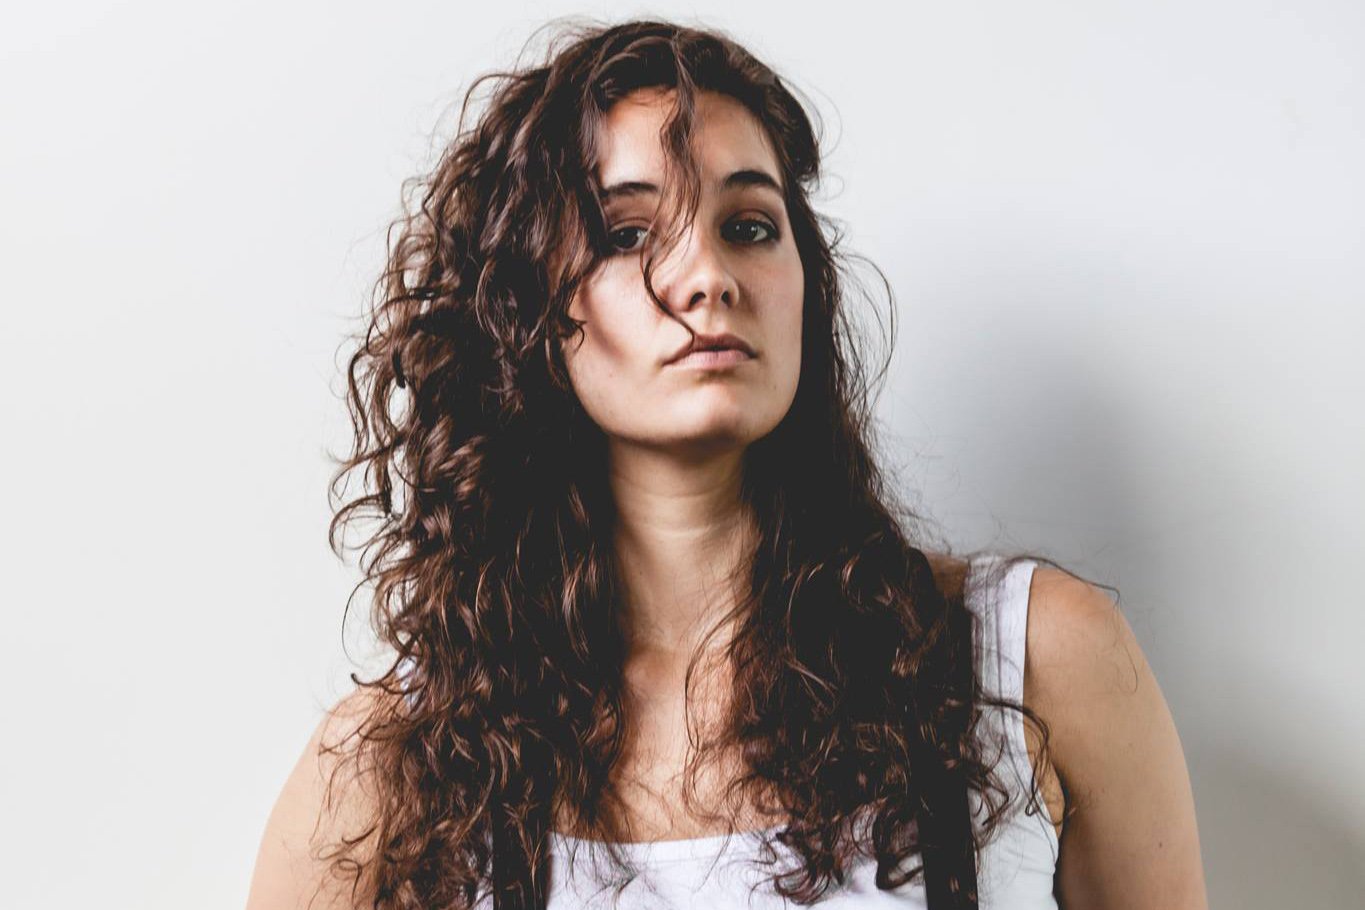 Marina Katerina's letting her new track Loose